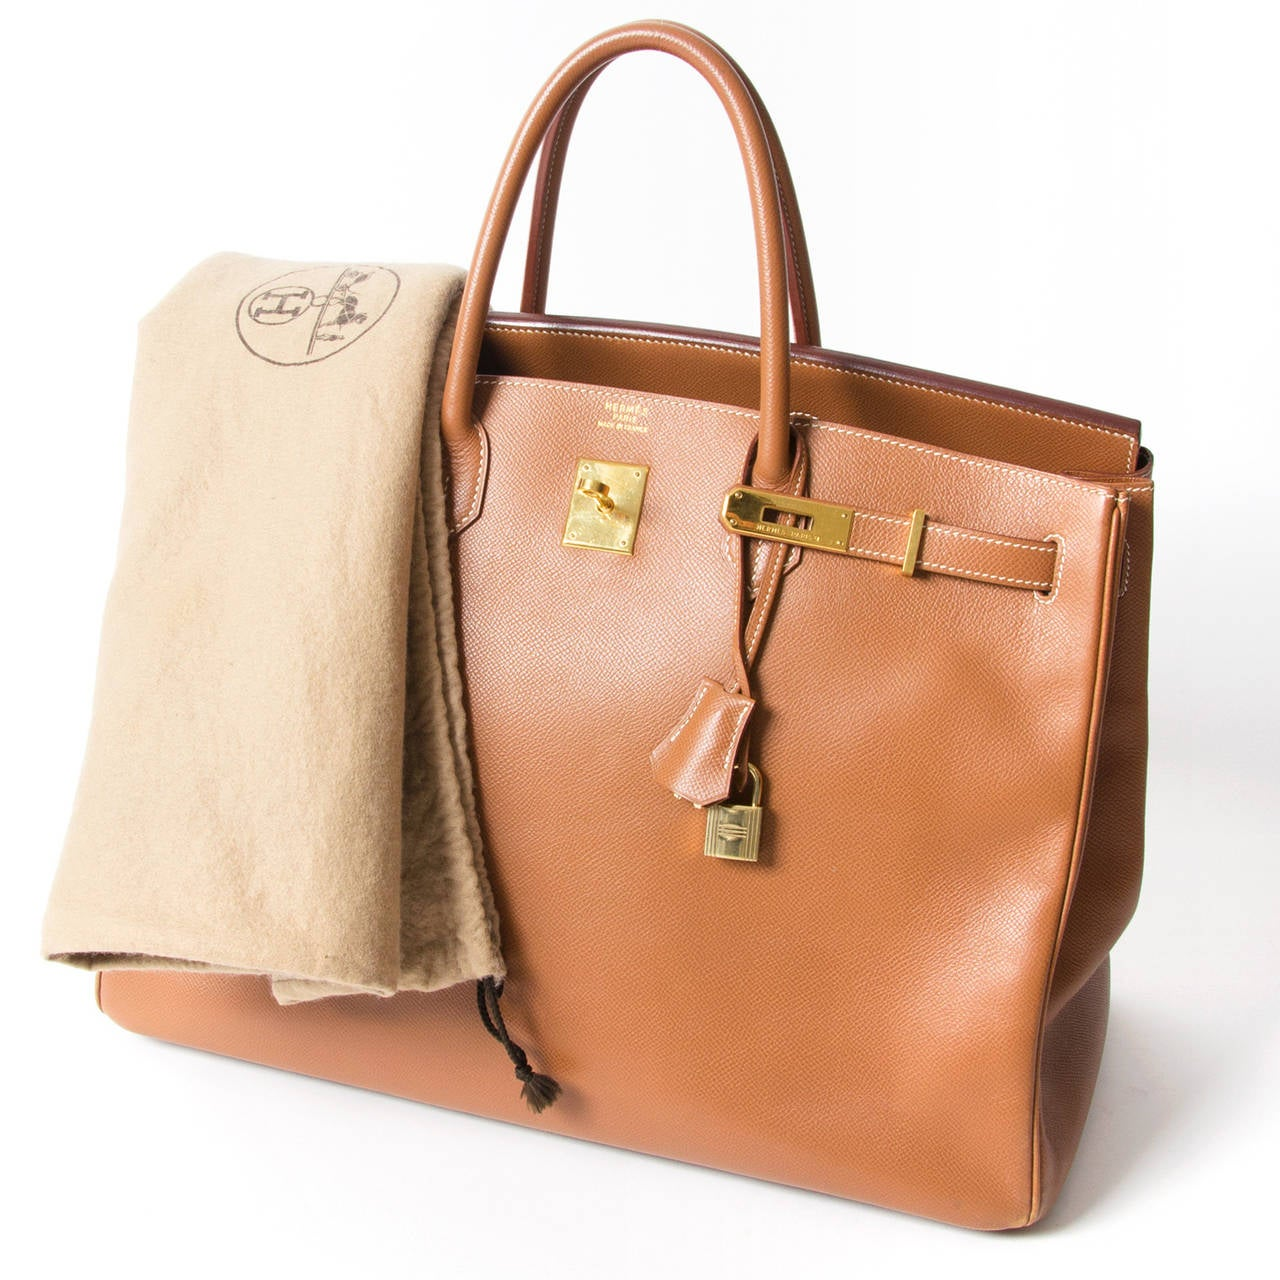 knock off hermes bags - birkin bag hermes